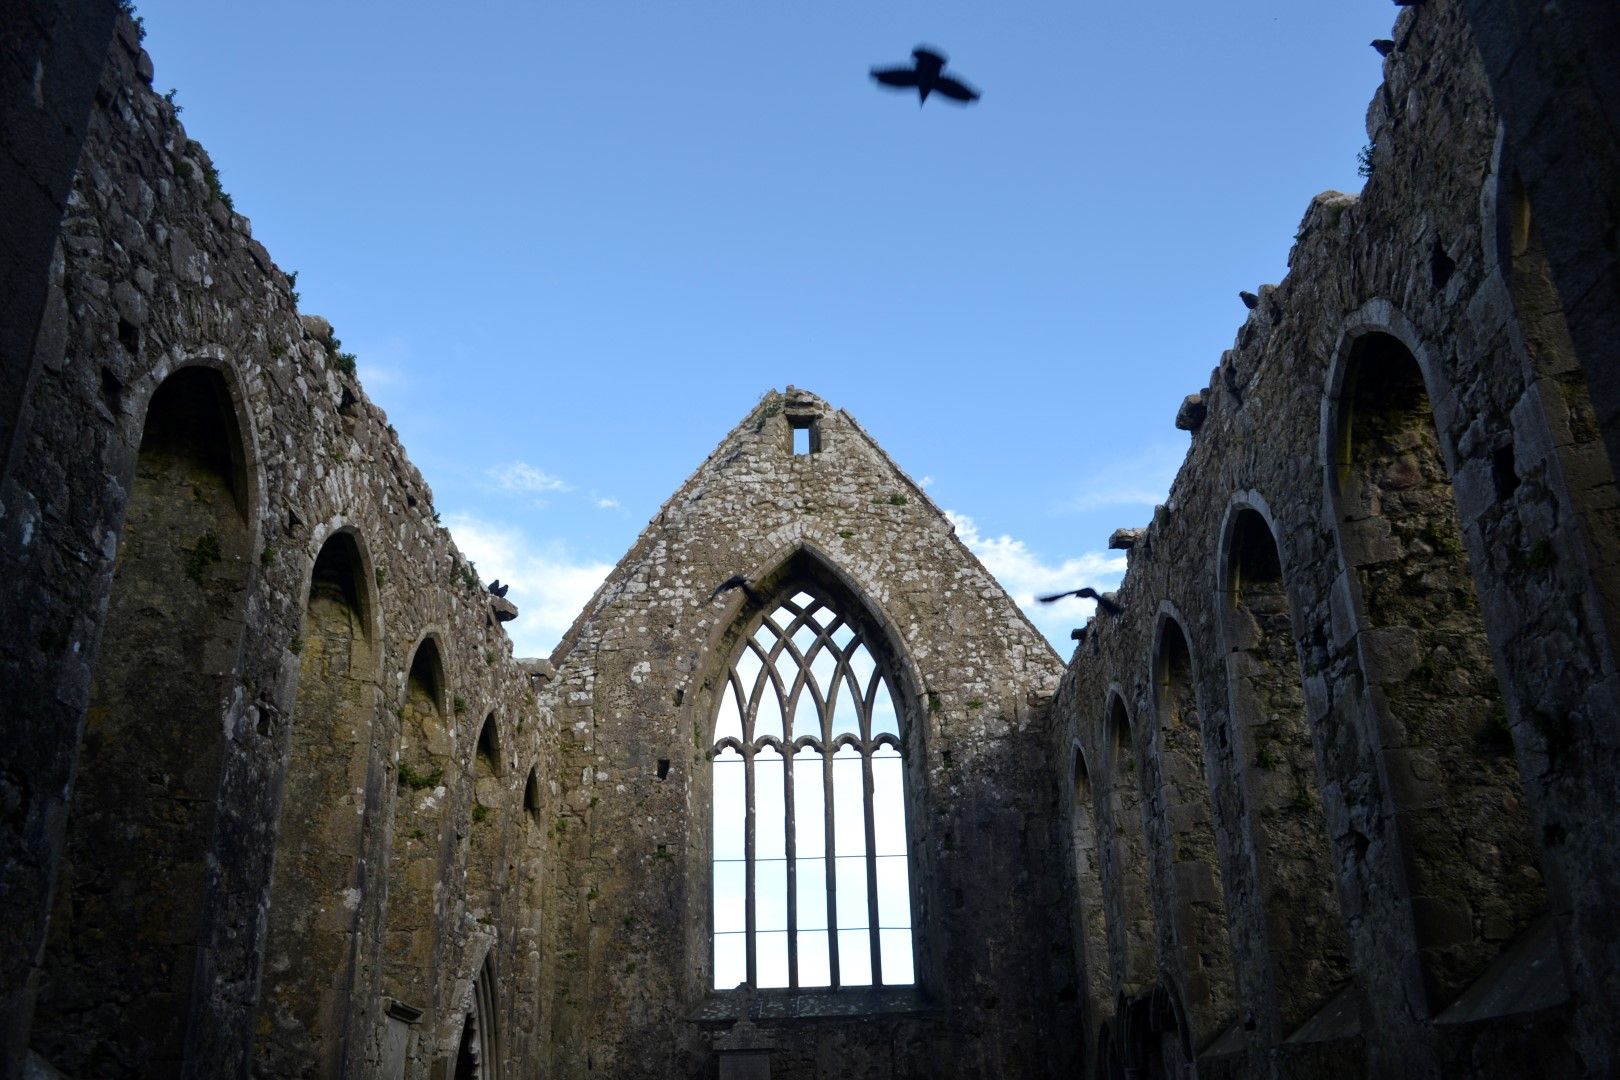 Clare Galway Friary, Ireland (photo:Andy Bruner)